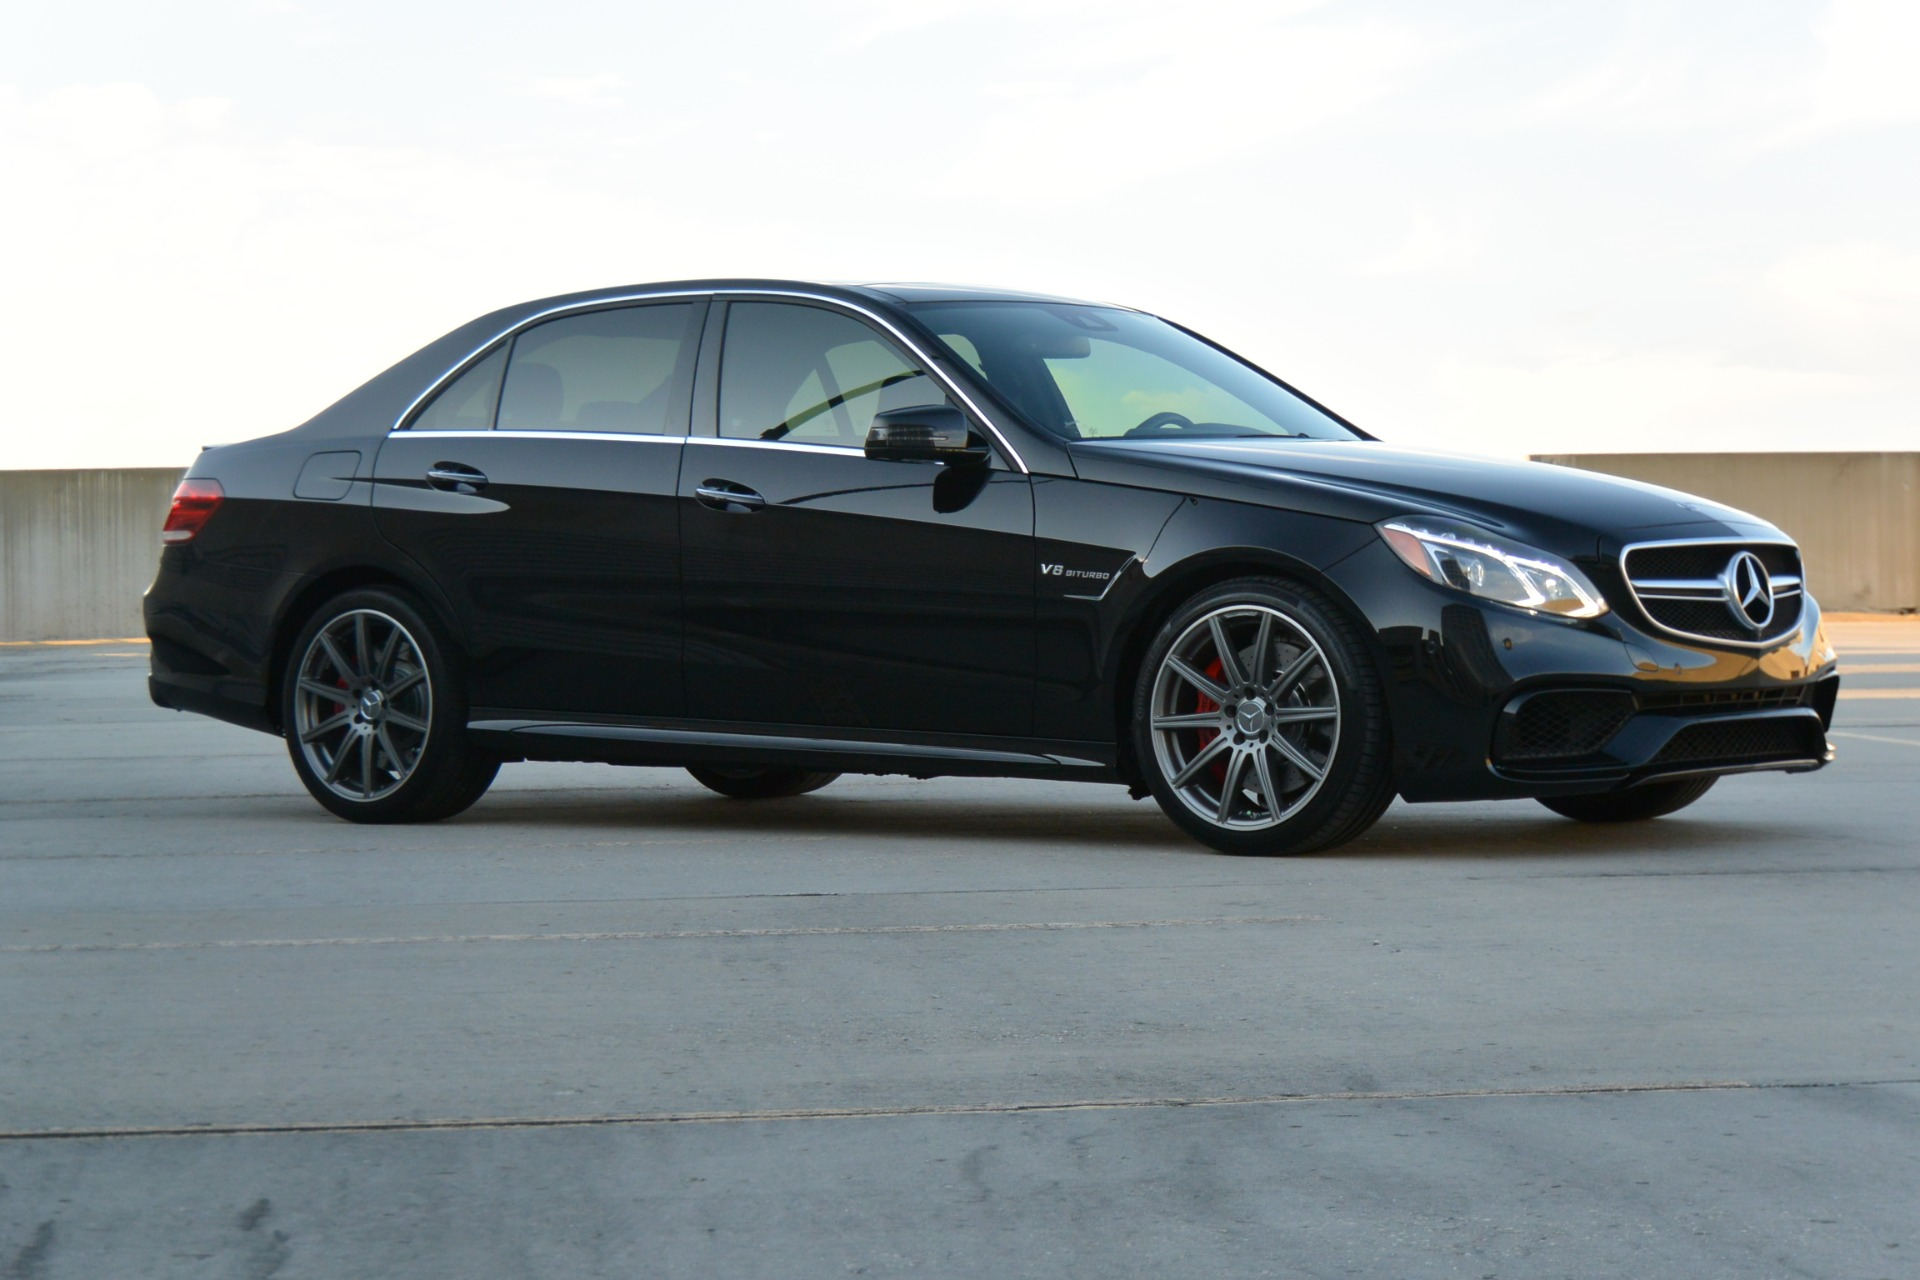 Used-2014-Mercedes-Benz-E-Class-E-63-AMG-S-Model-for-sale-Jackson-MS